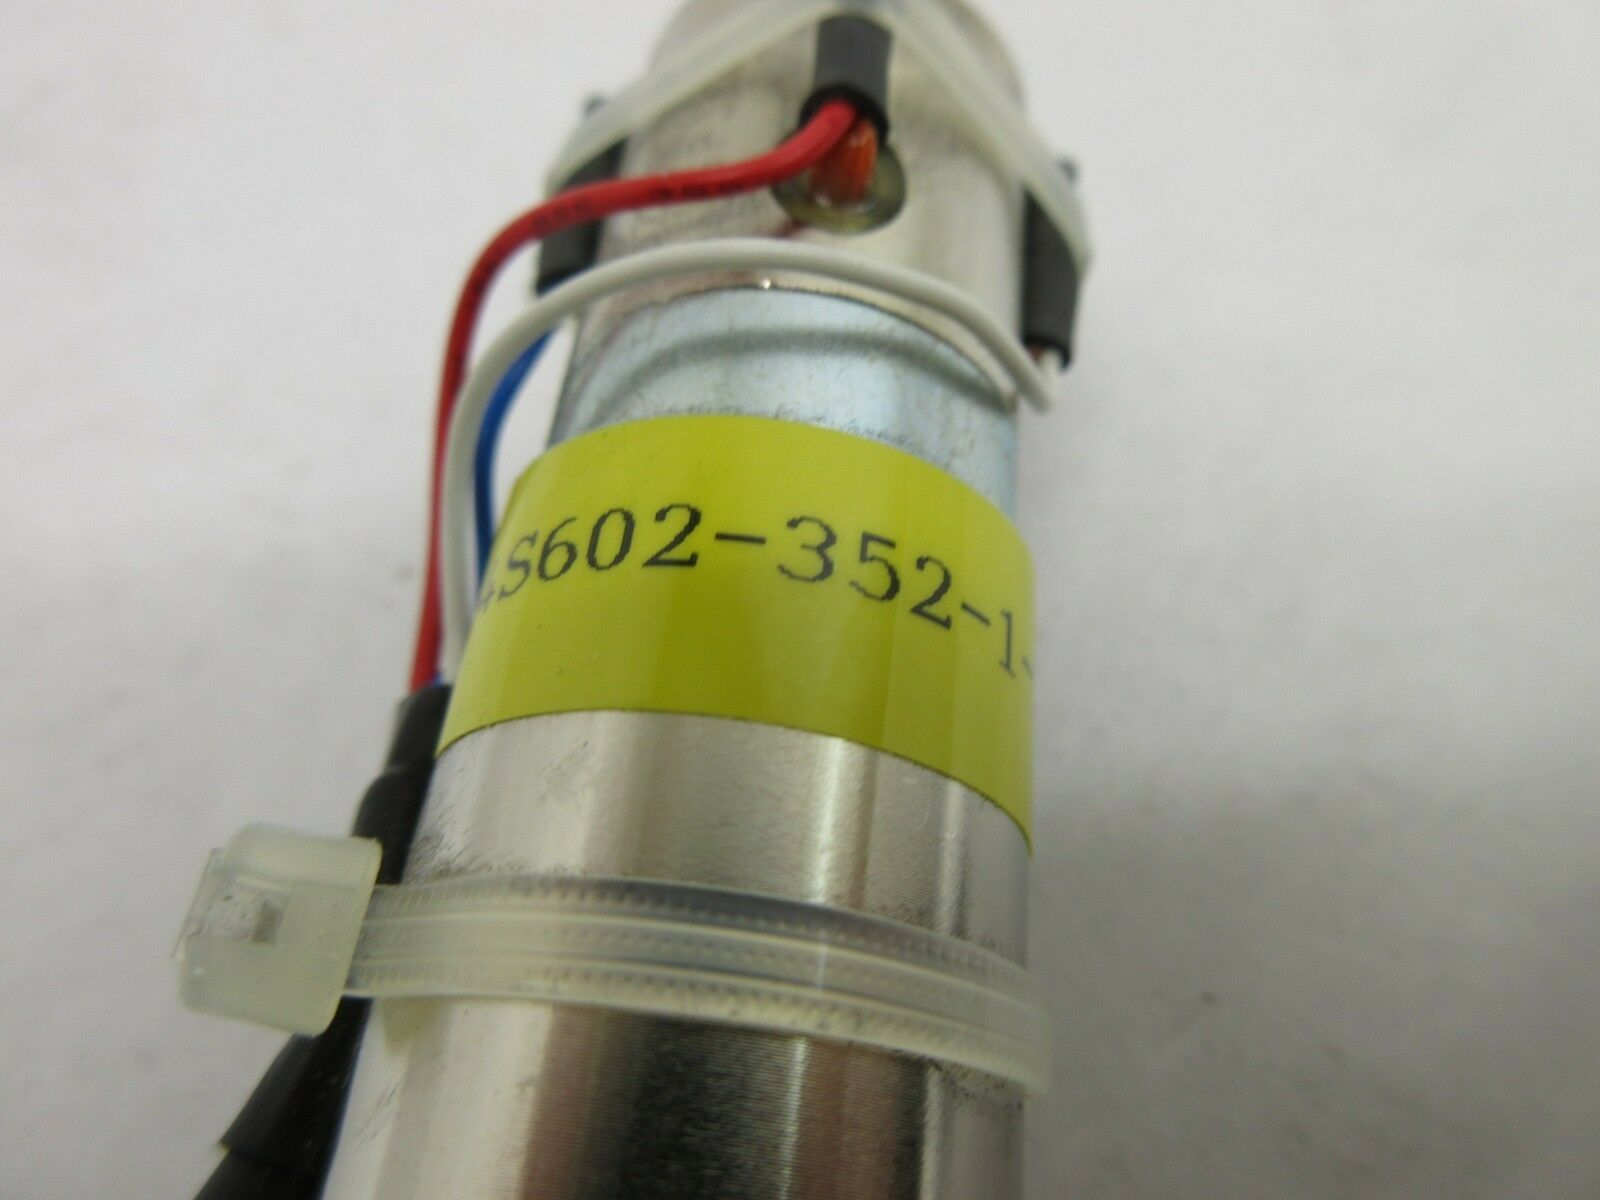 Nikon 4S602-352-1 Stage Motor Encoder Assembly RMN1000 NSR-S204B Used Working